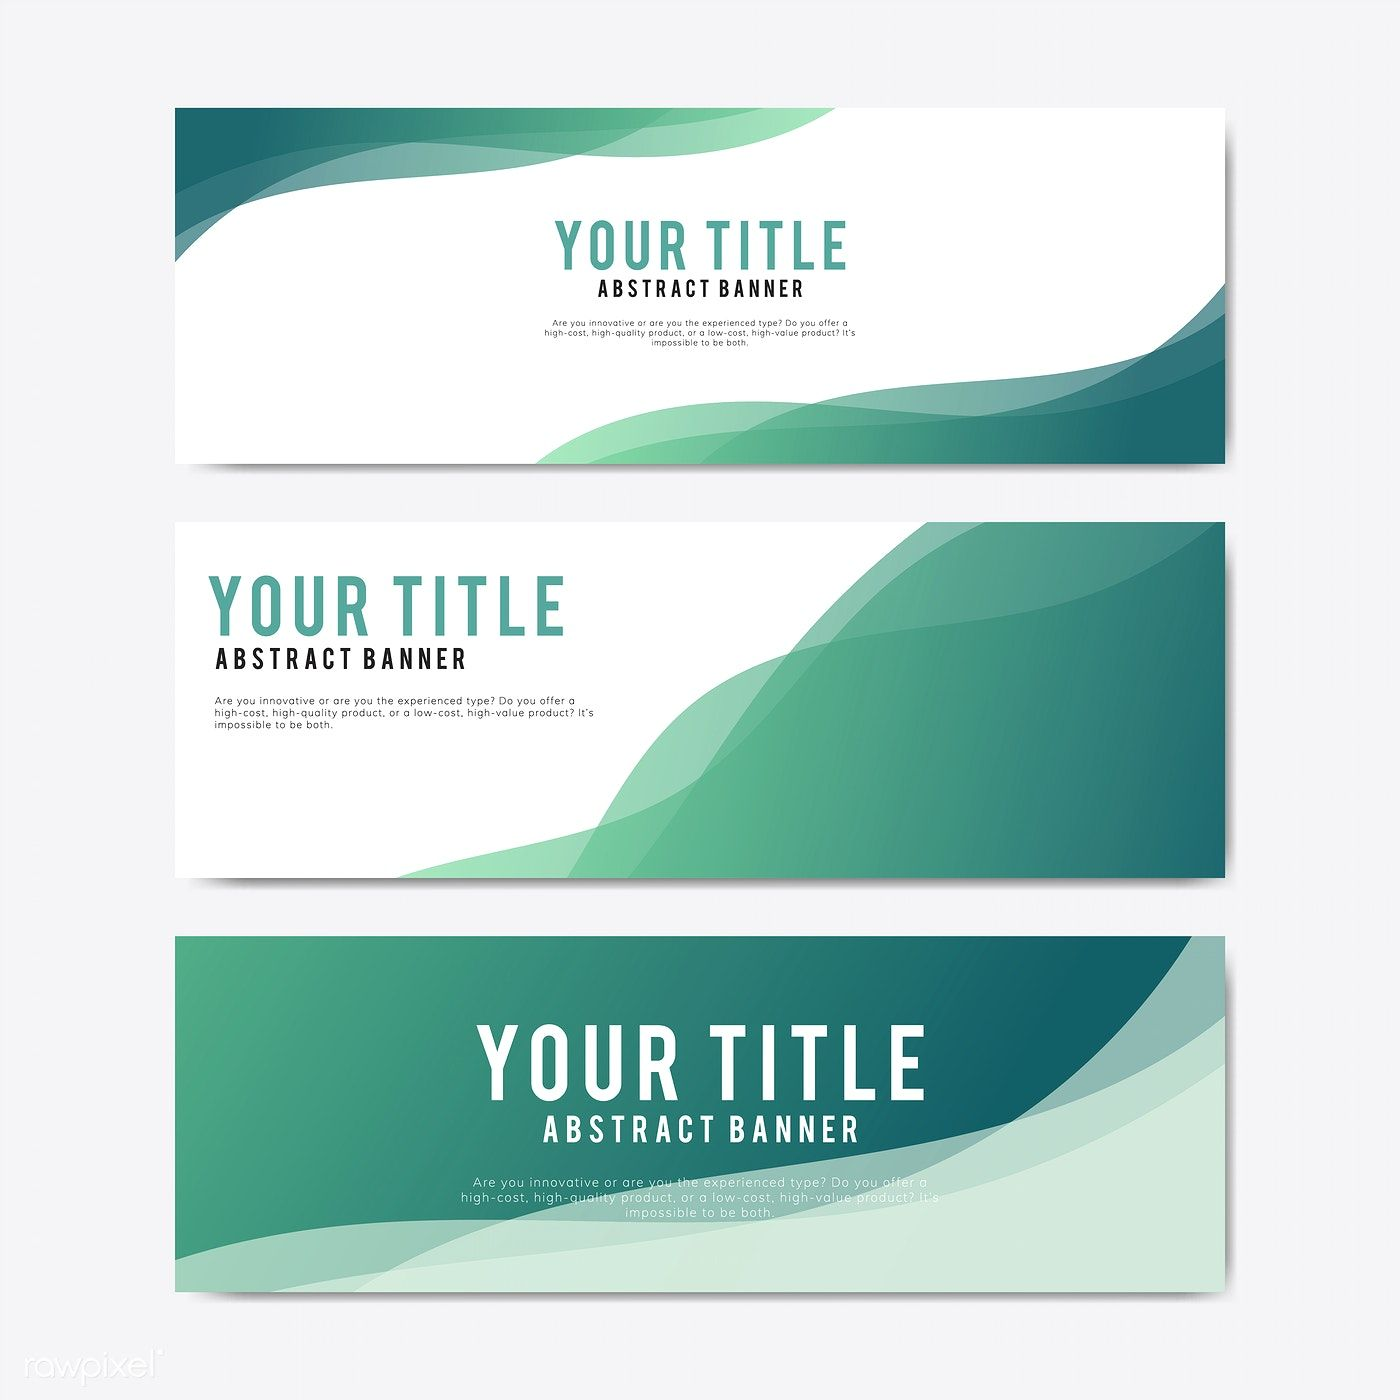 Colorful And Abstract Banner Design Templates Free Image By Rawpixel Com 배너